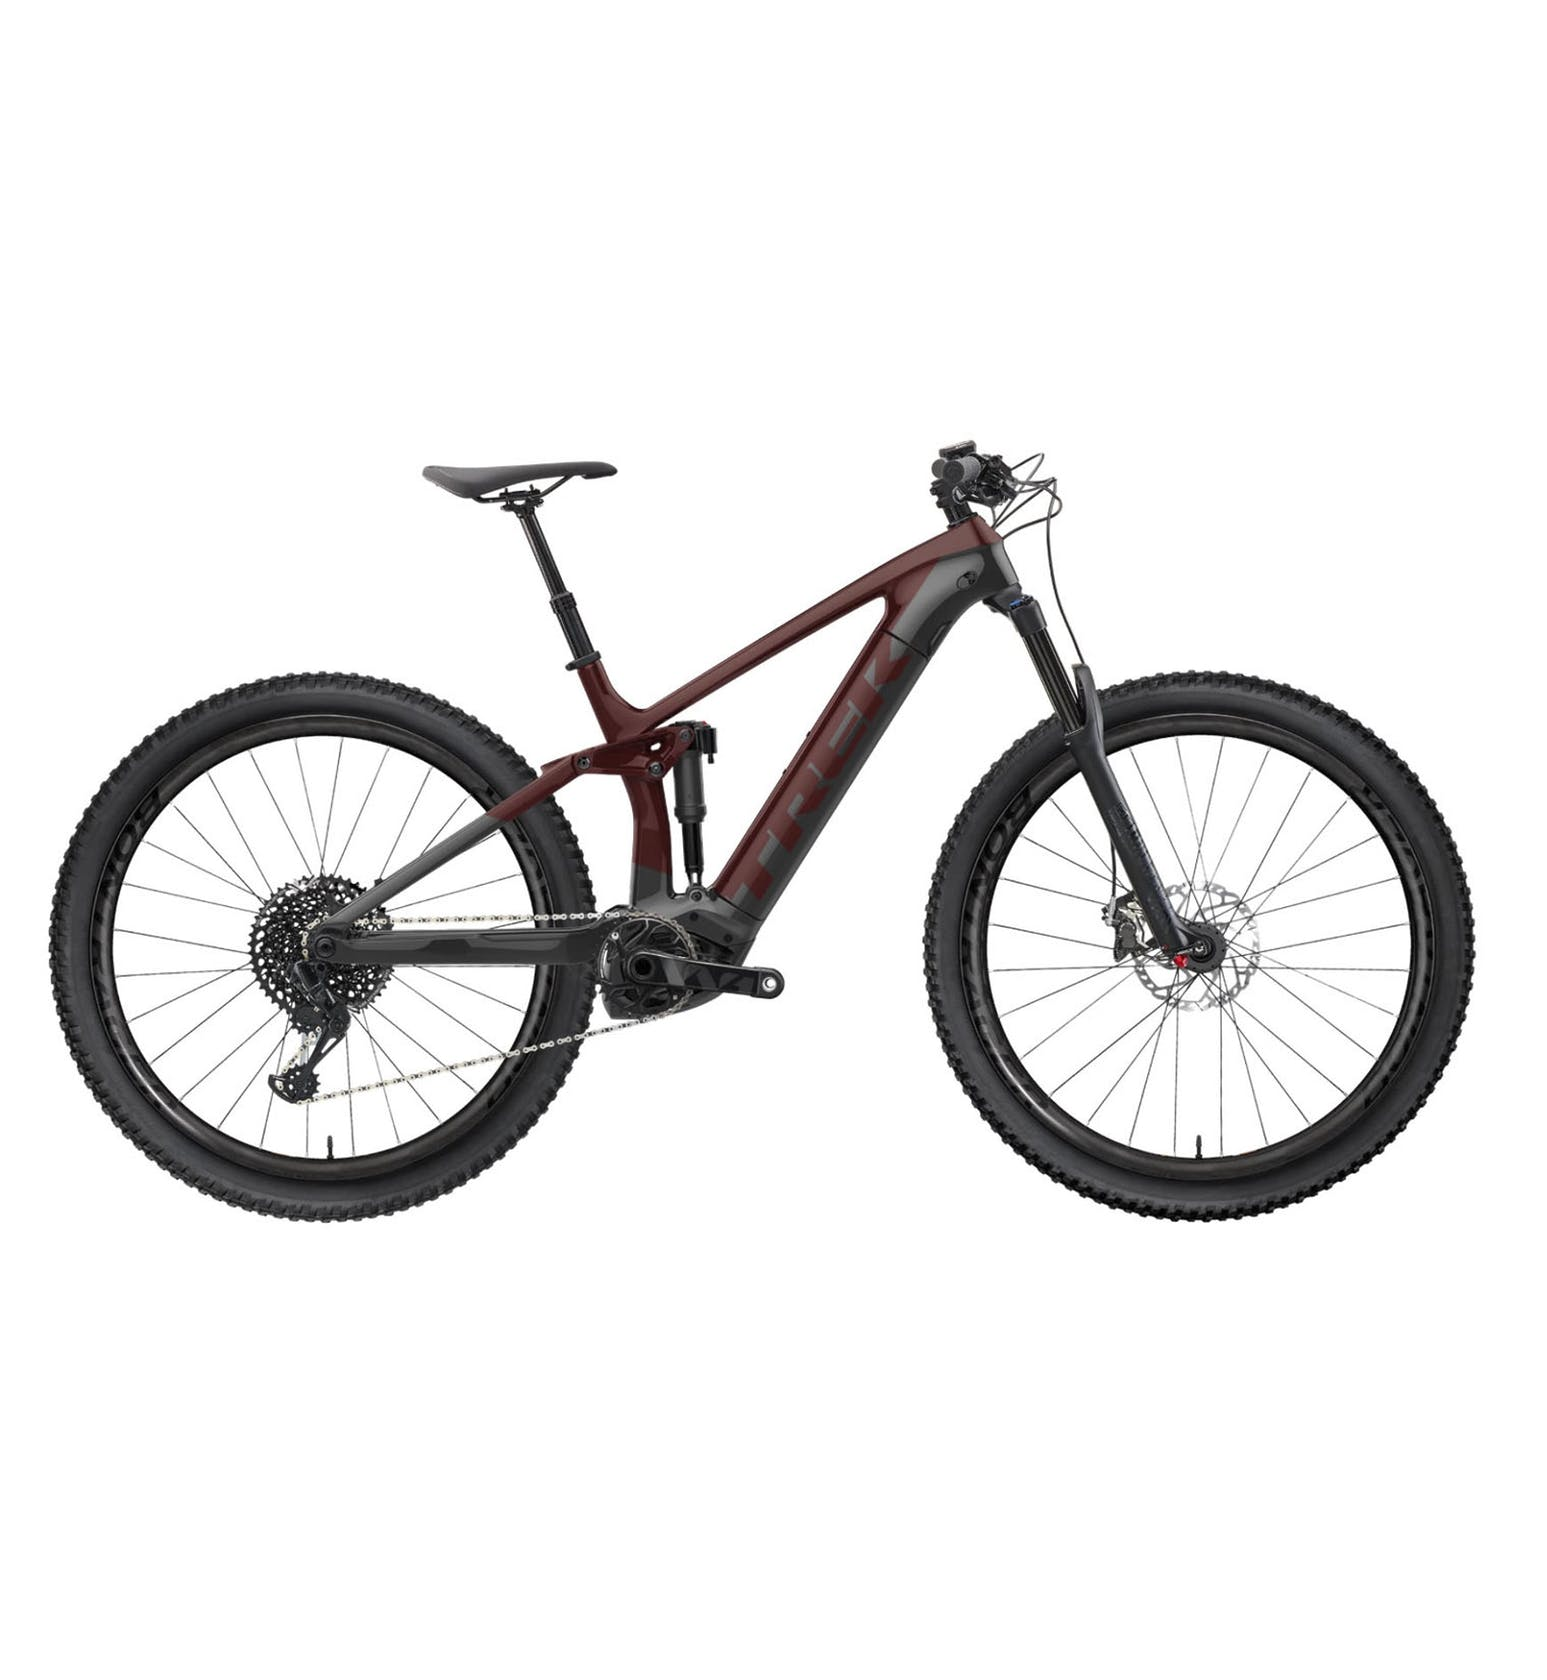 Trek Rail 9.8 XT Carbon (2021) - eMountainbike Enduro